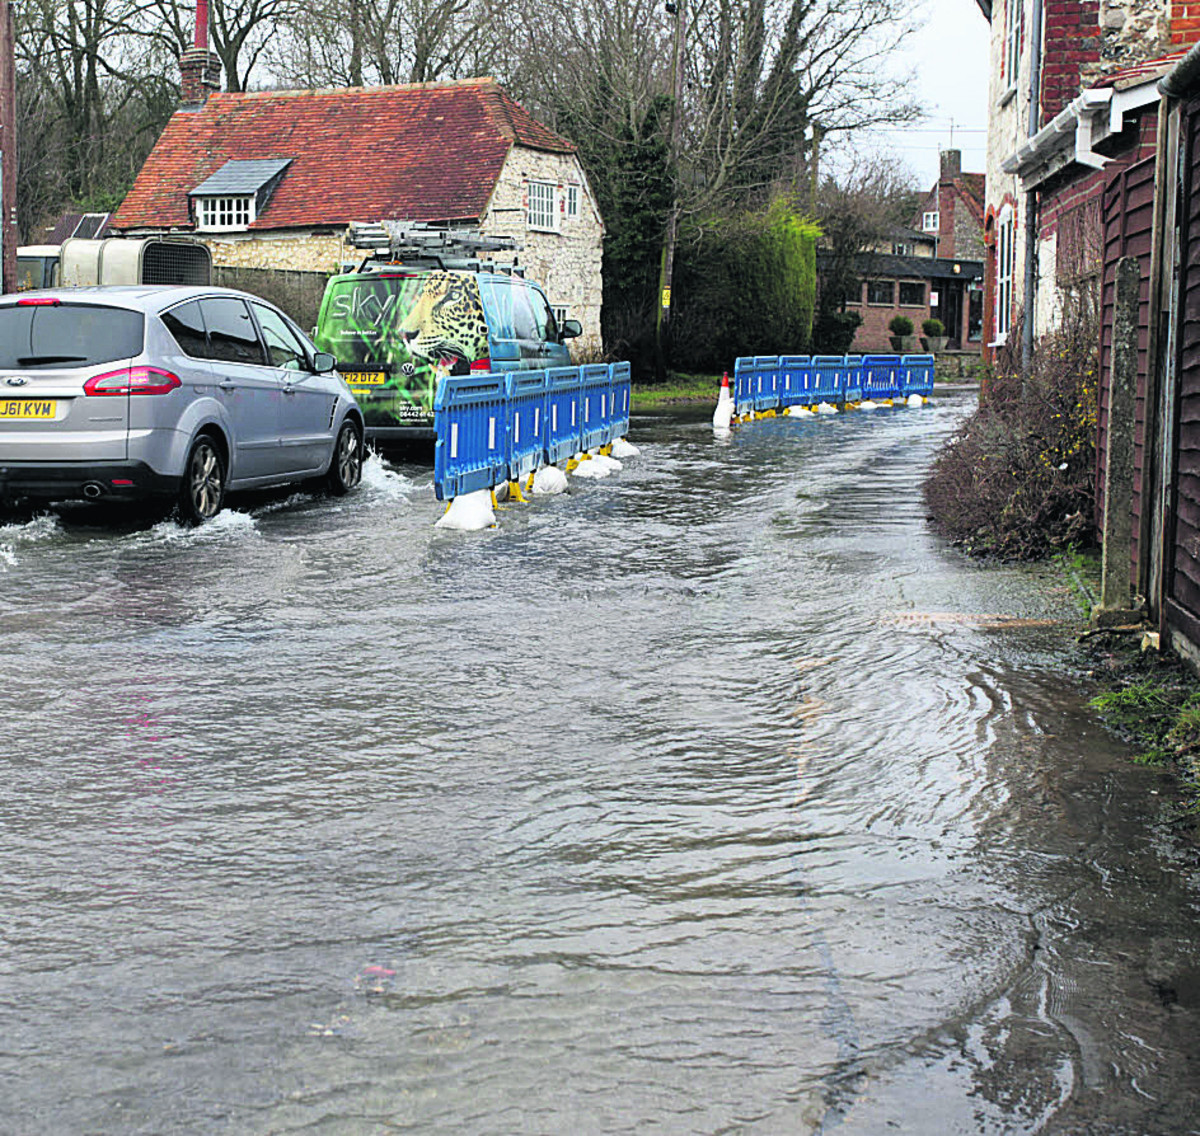 Aldbourne hit by floods after Bradford on Avon defences hold